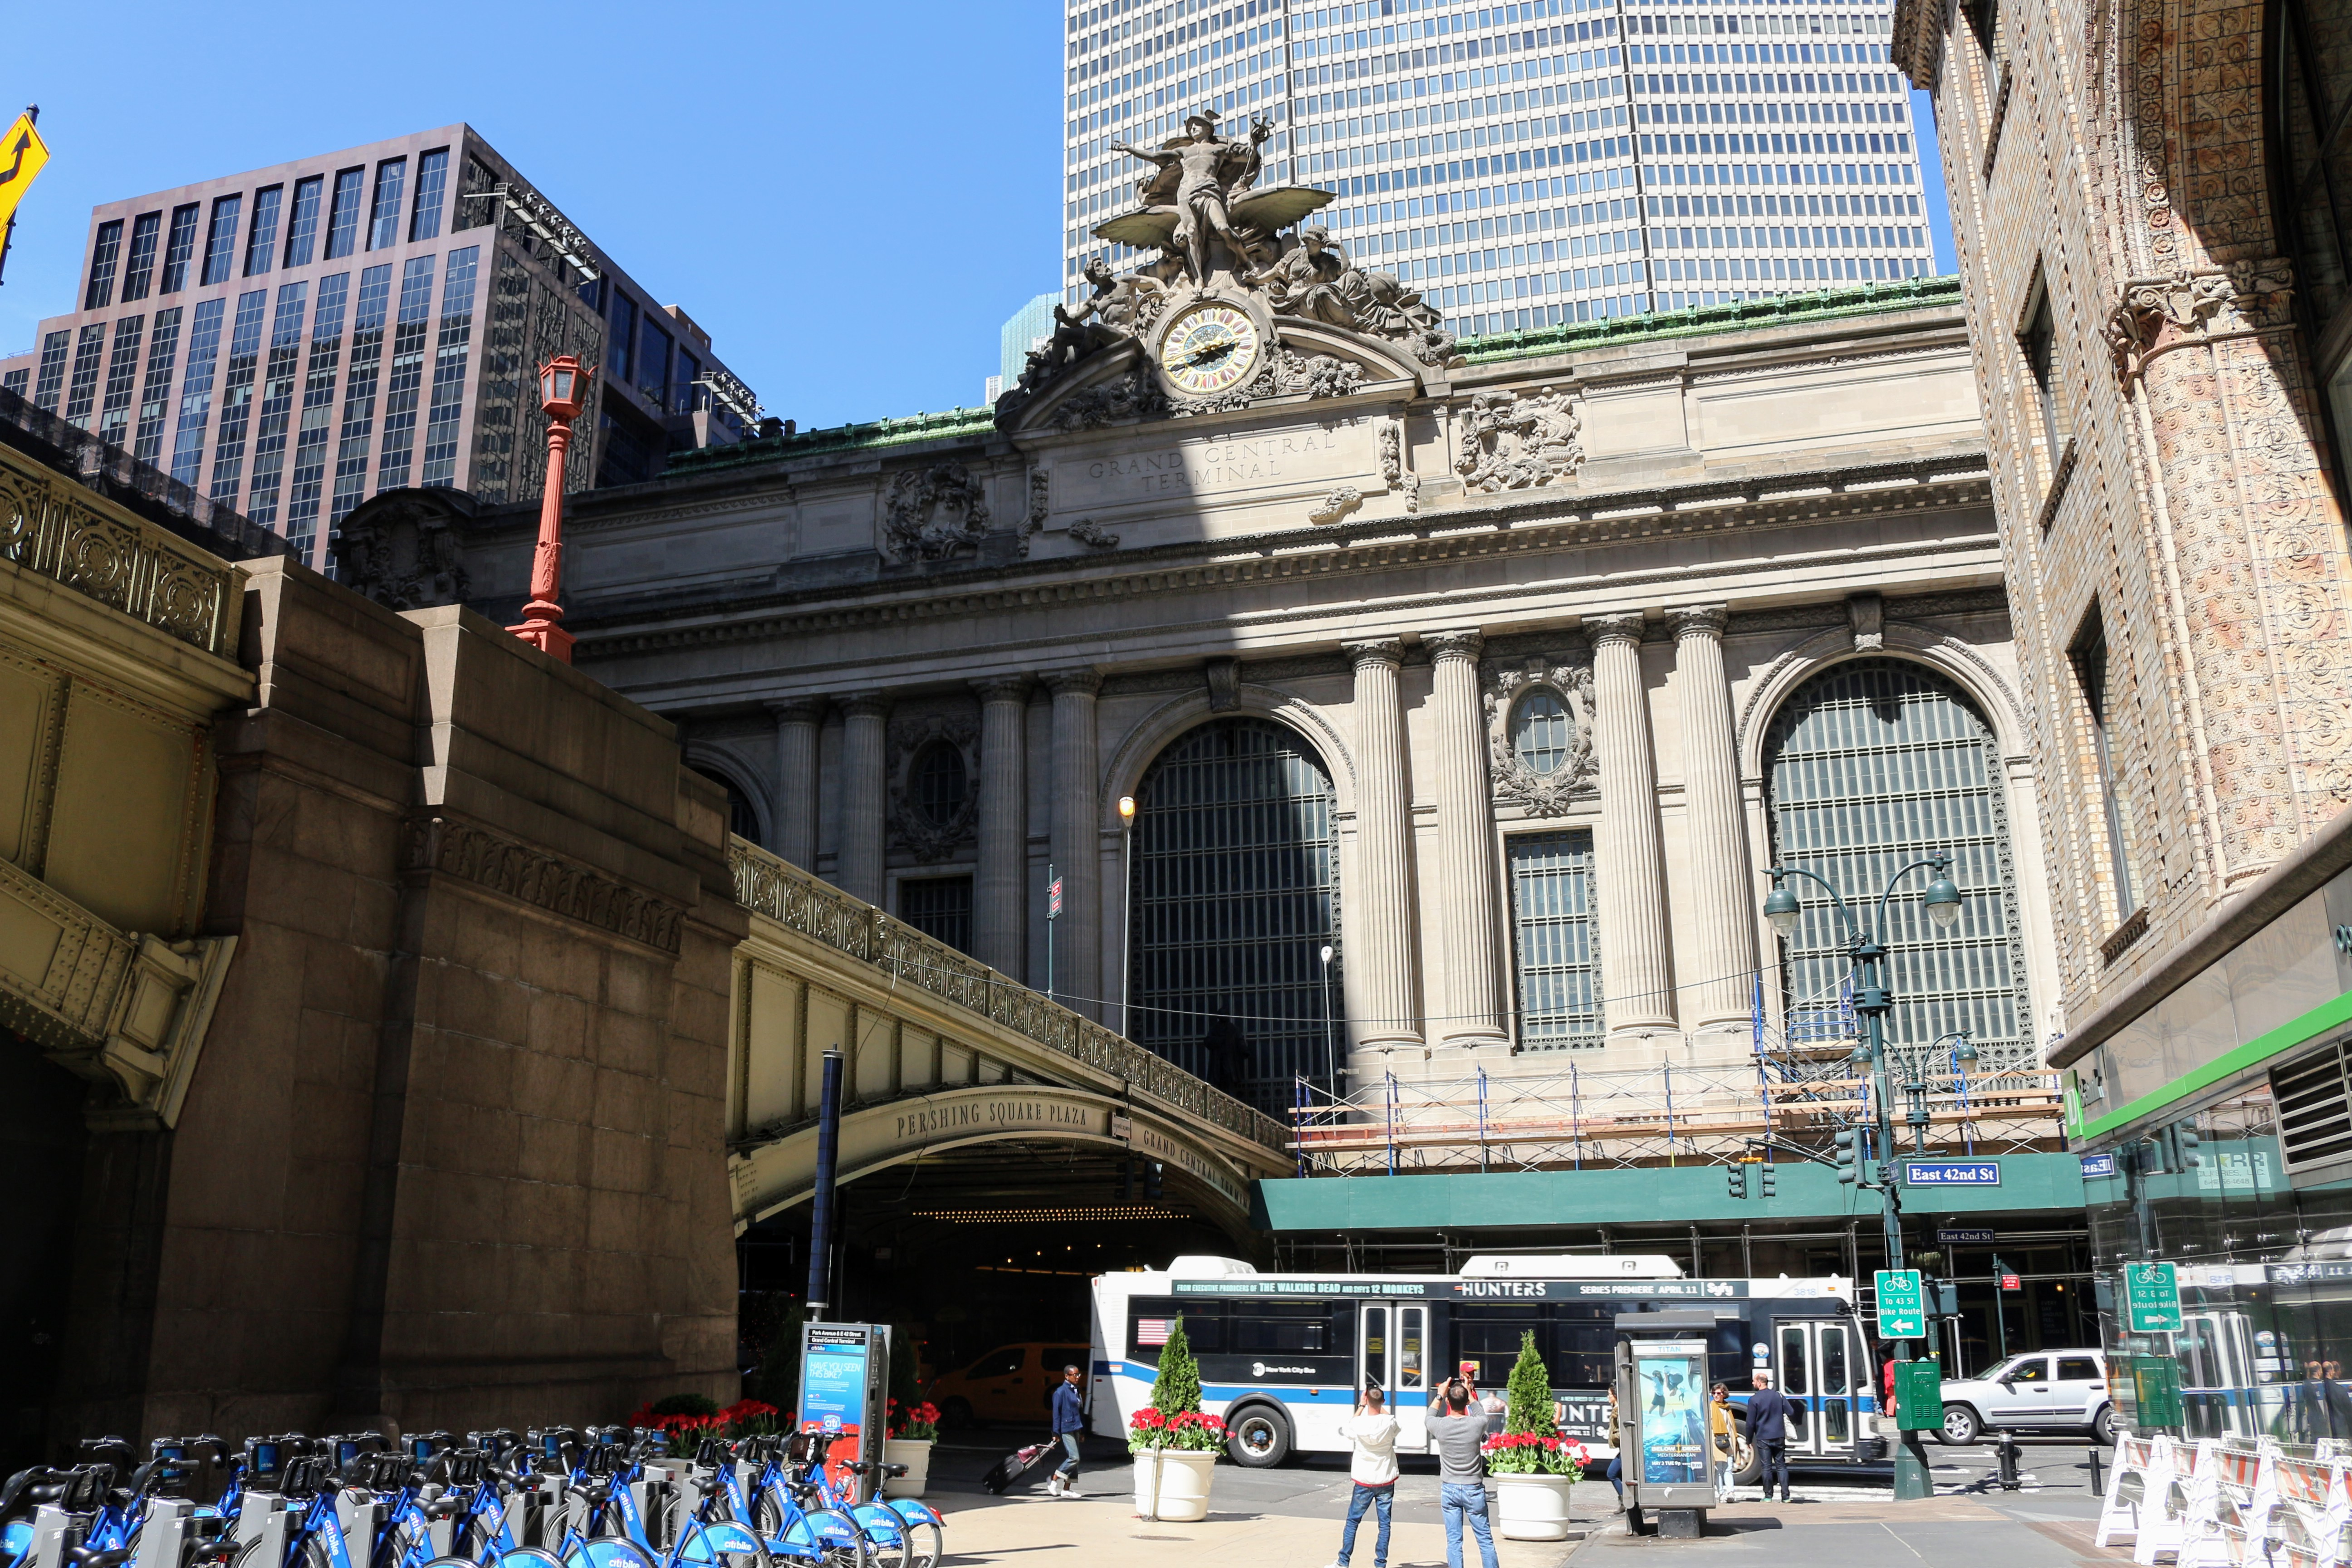 Outside Grand Central Terminal